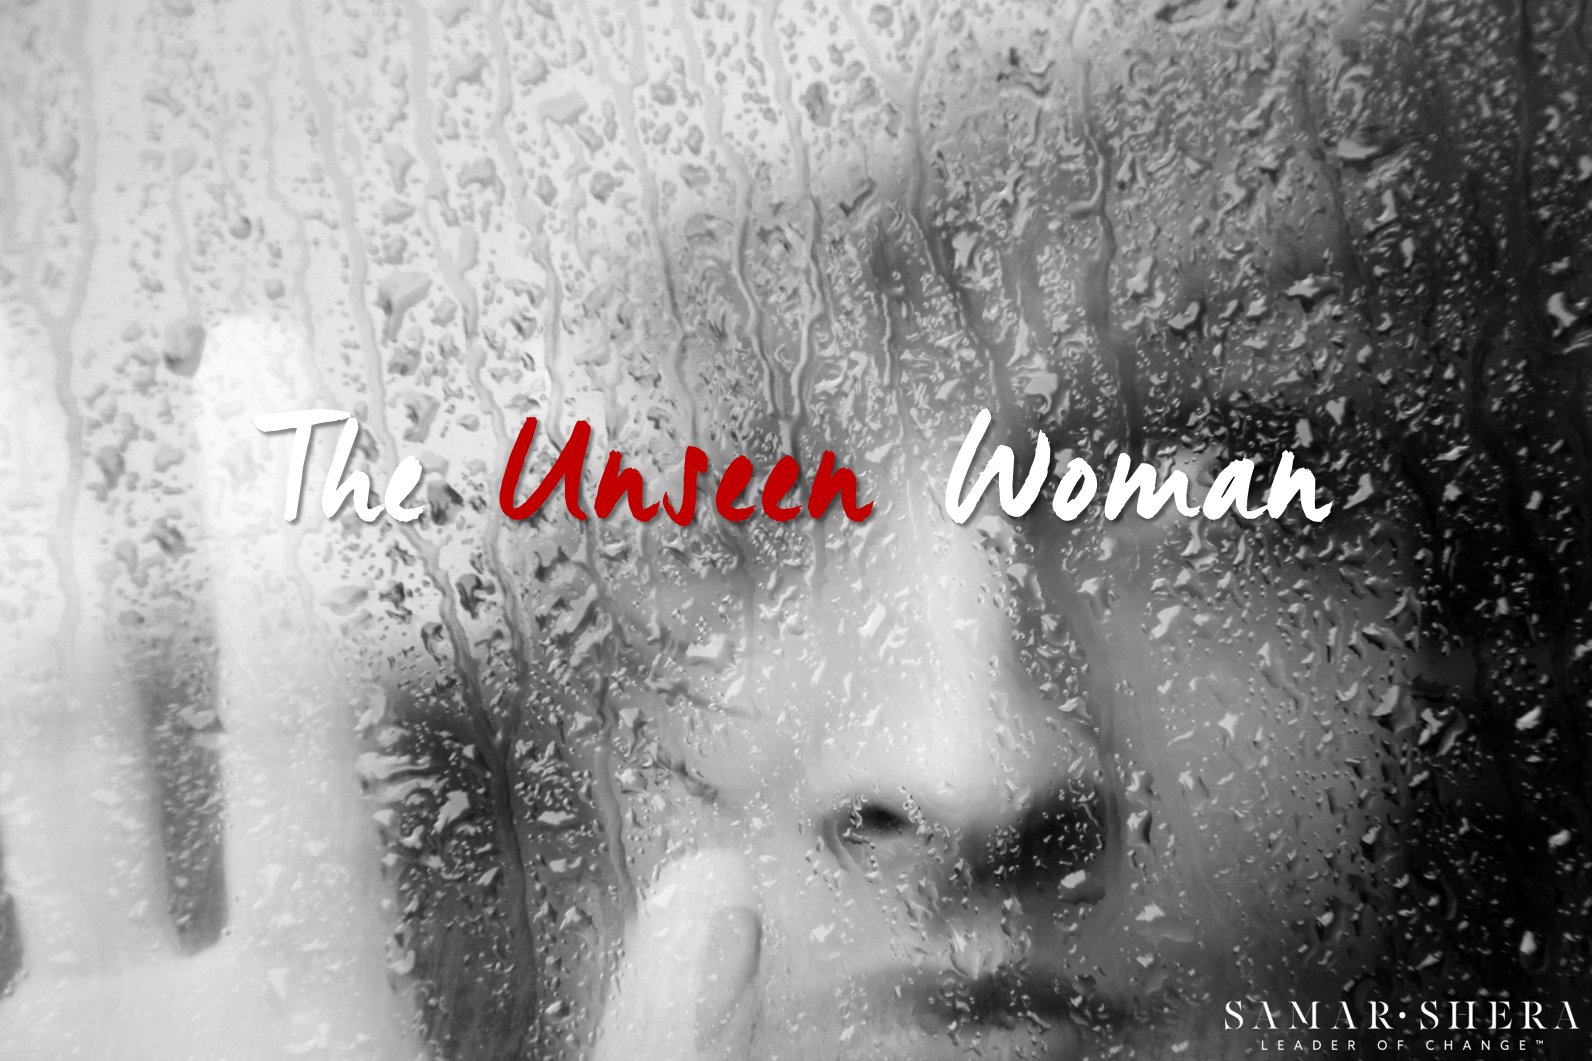 The Unseen Woman